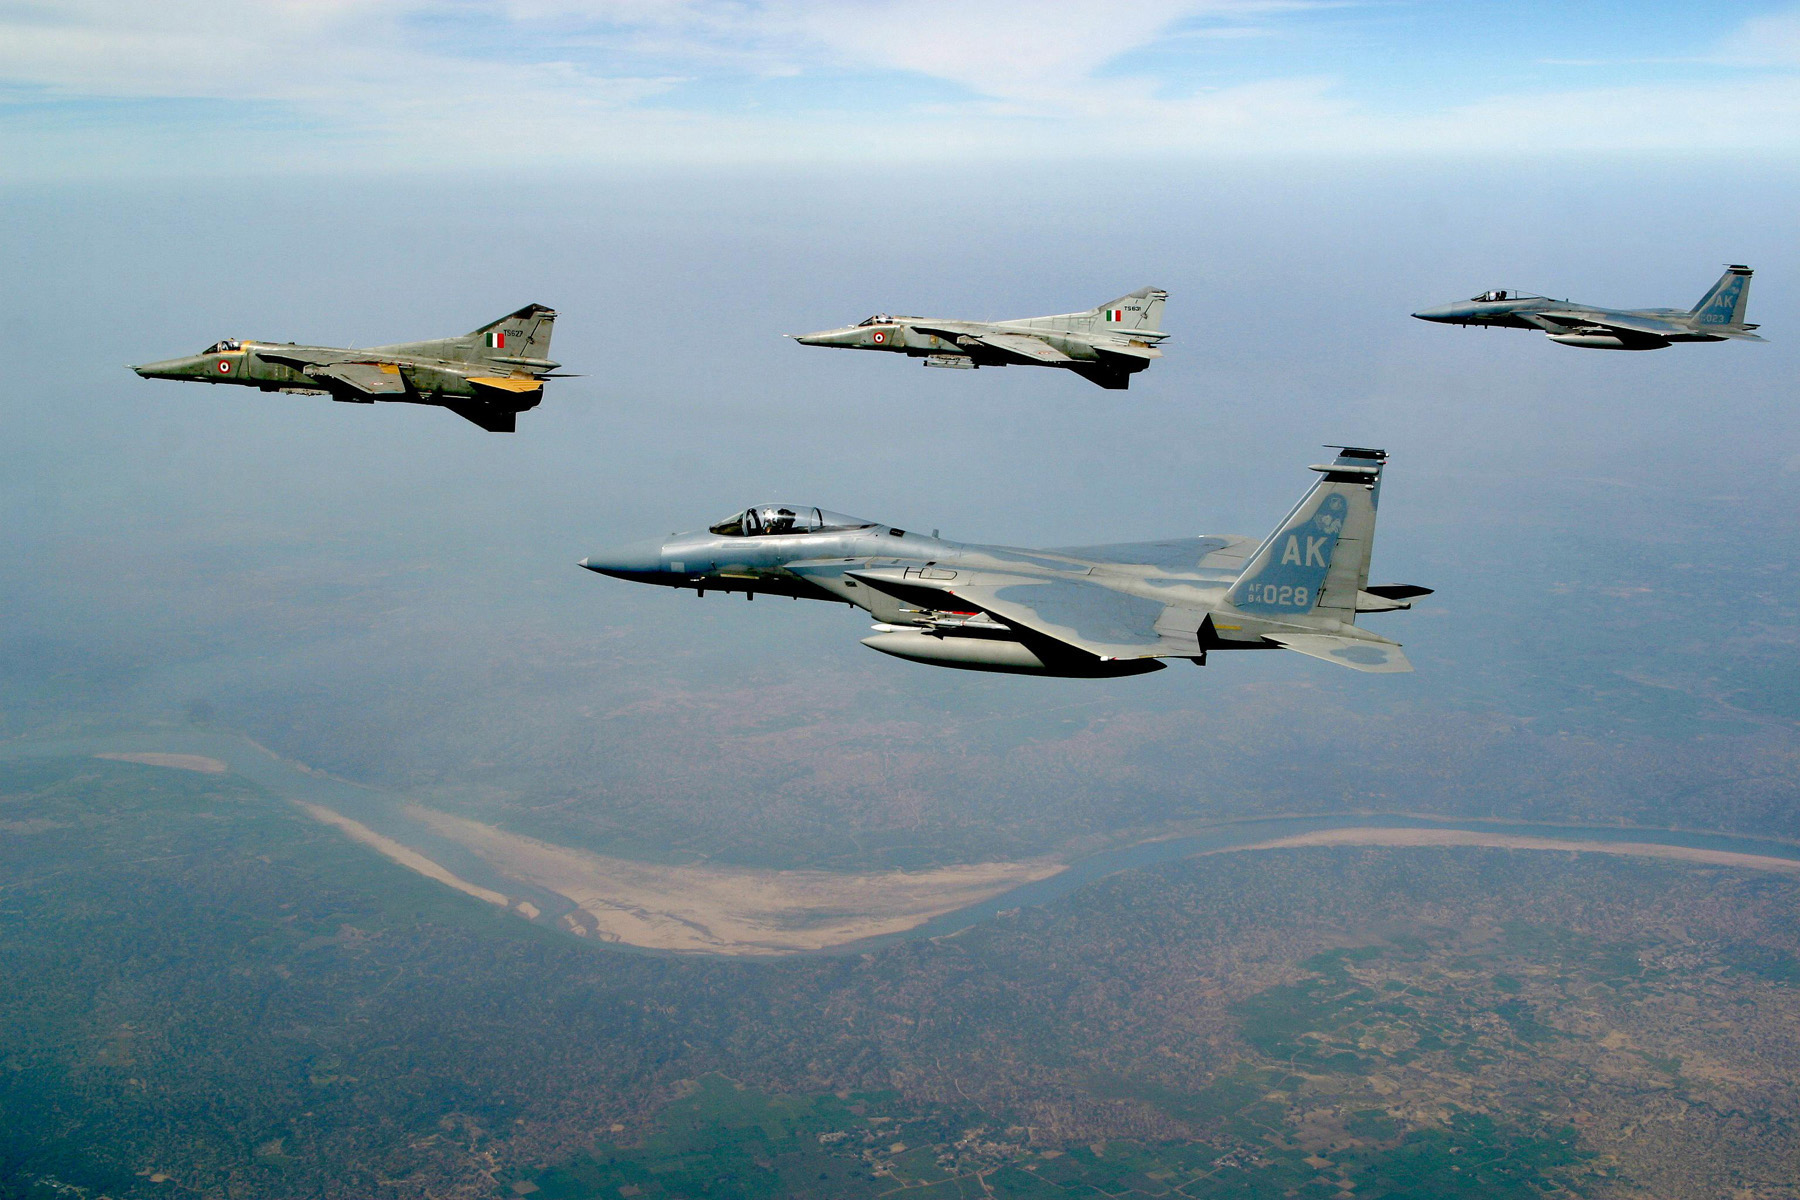 USAF F-15C Eagles from Elmendorf AFB, Alaska and  Indian air force MIG-27 Floggers fly together over the Indian landscape during Cope India 04, the first bilateral fighter exercise between the two air forces in more than 40 years.  The 10-day exercise concluded Feb 25.  (IAF courtesy photo)